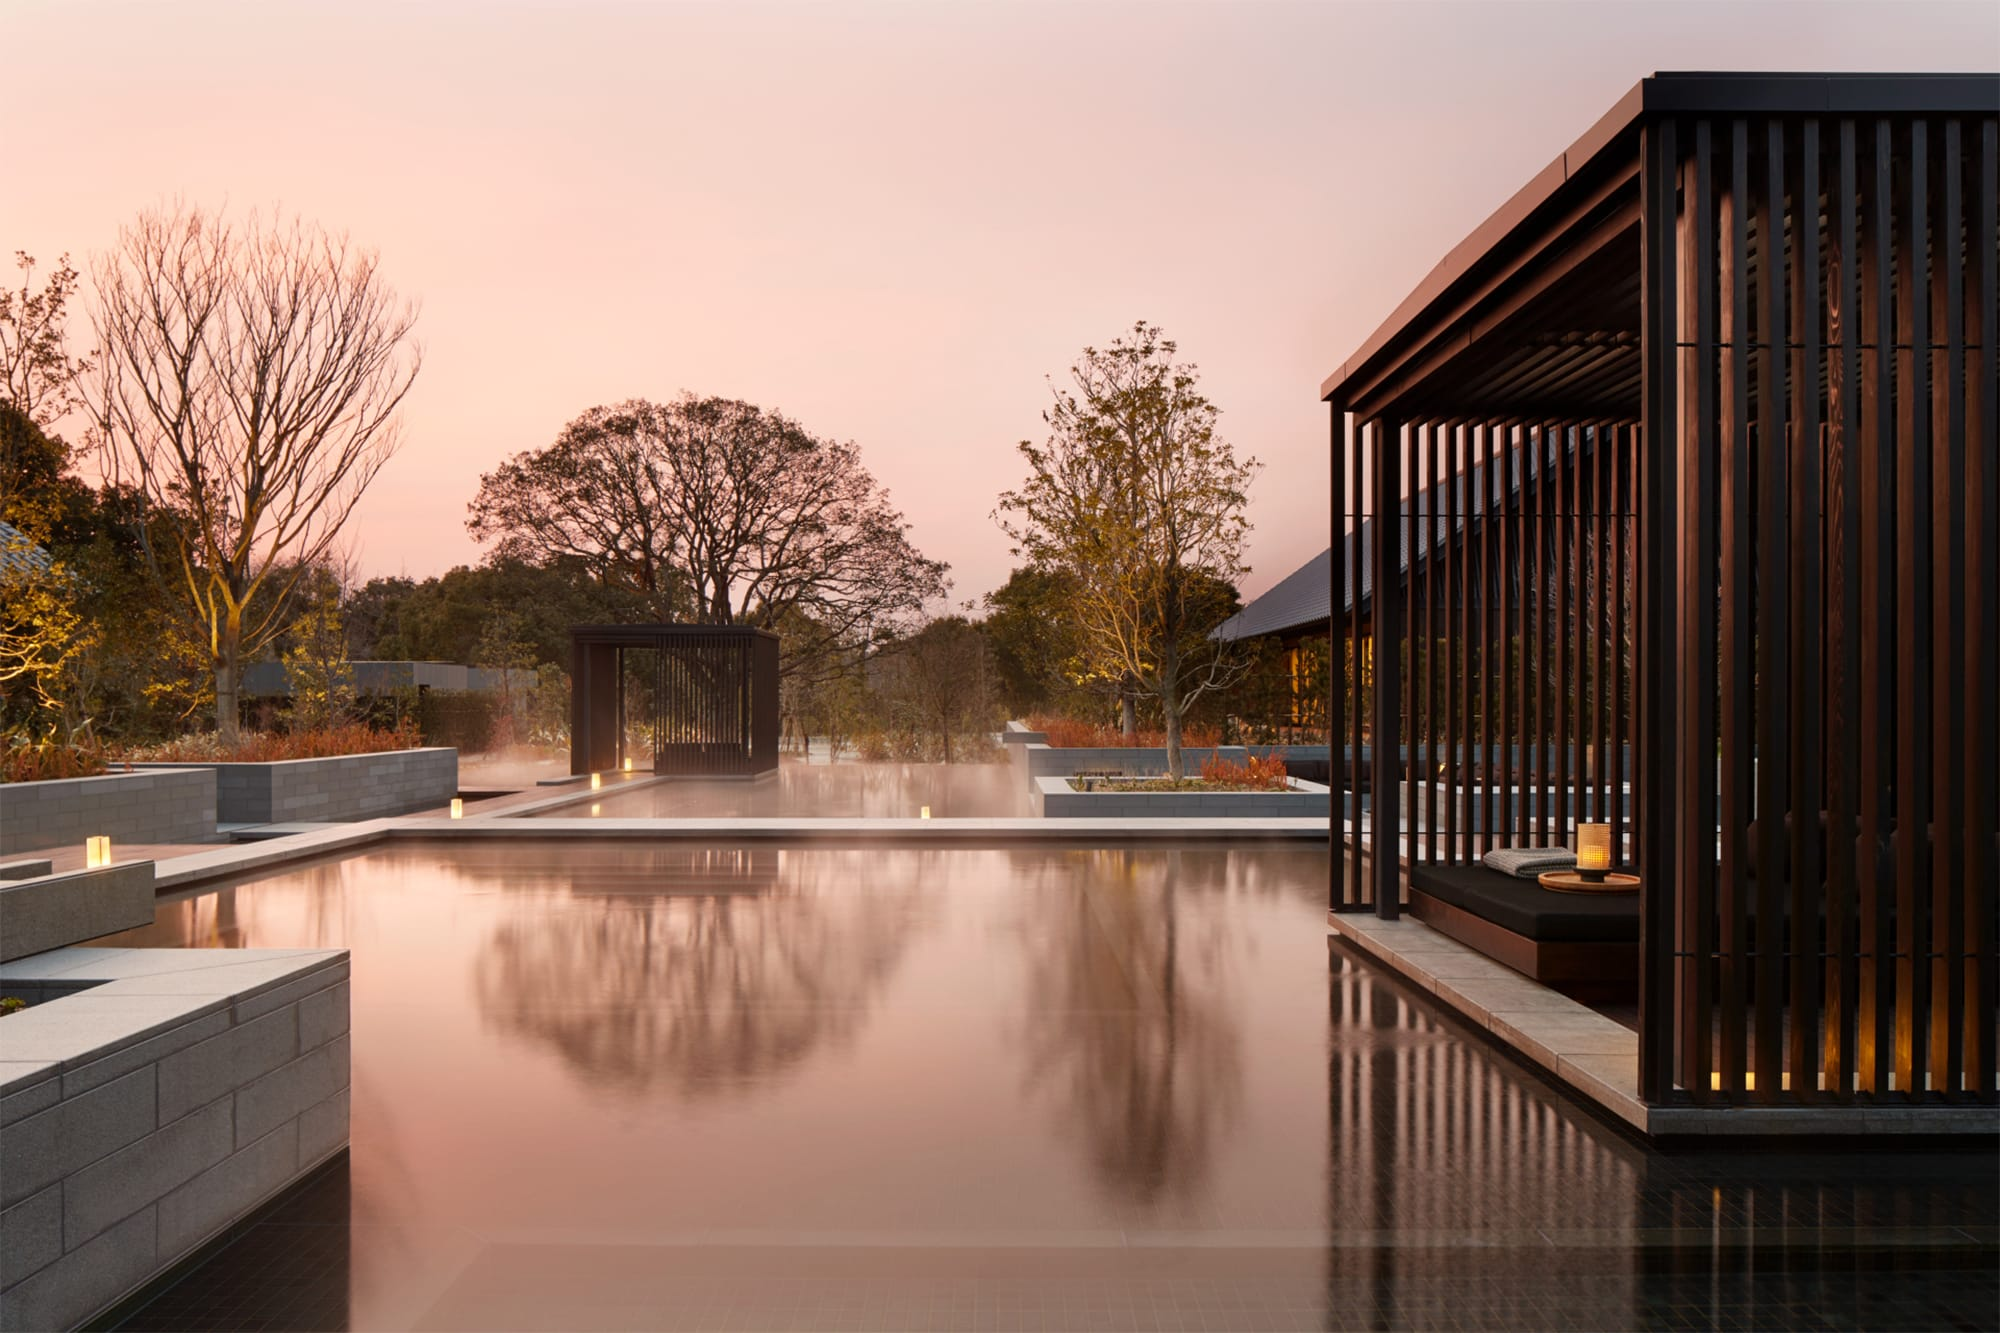 Guests can relax with their bathing suits on at the thermal springs, a large outdoor bath that uses onsen.